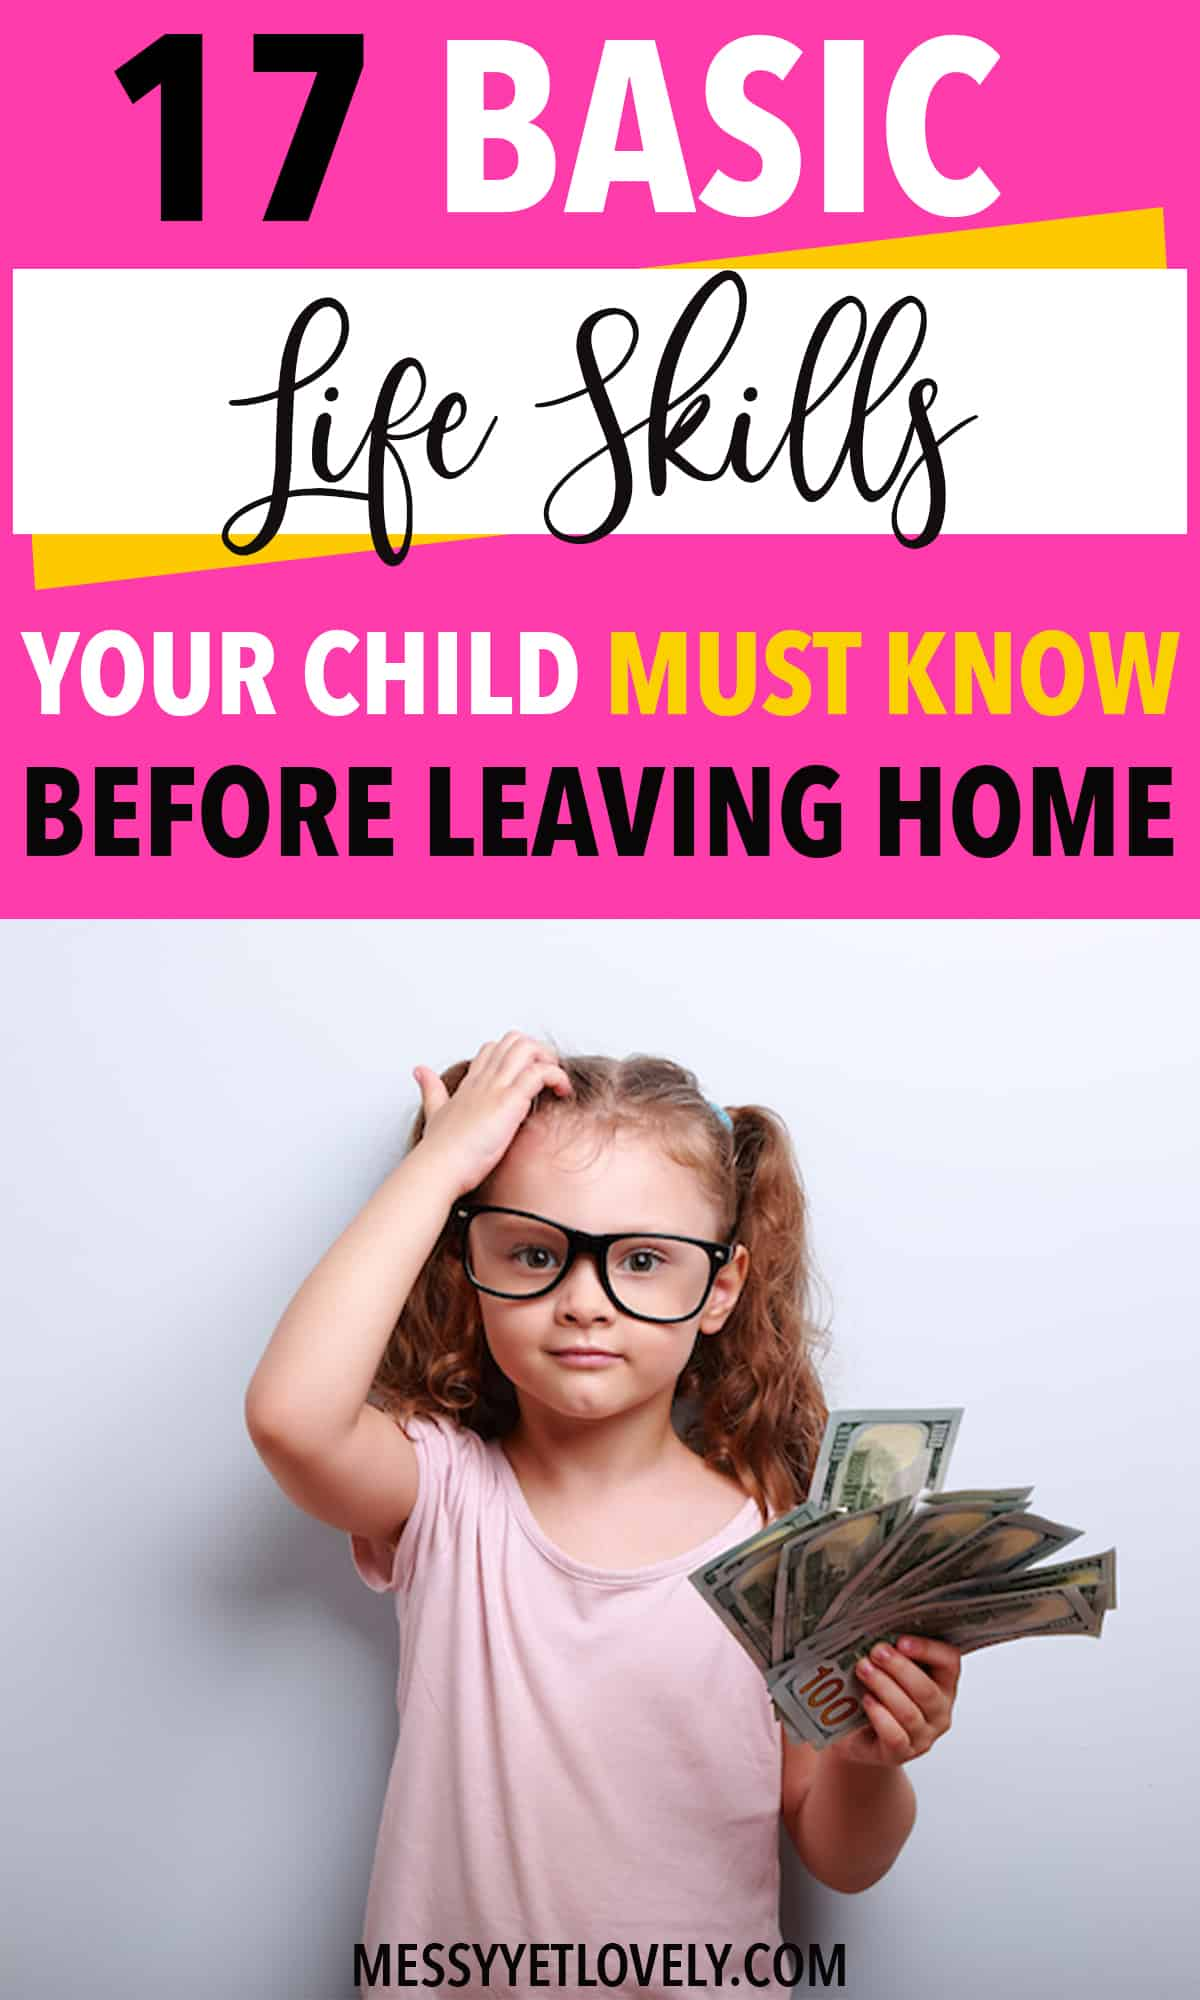 What are some of the basic life skills that will enable children to stand on their own? Here are 17 basic life skills for kids that every parent must teach. #lifeskills #parenting